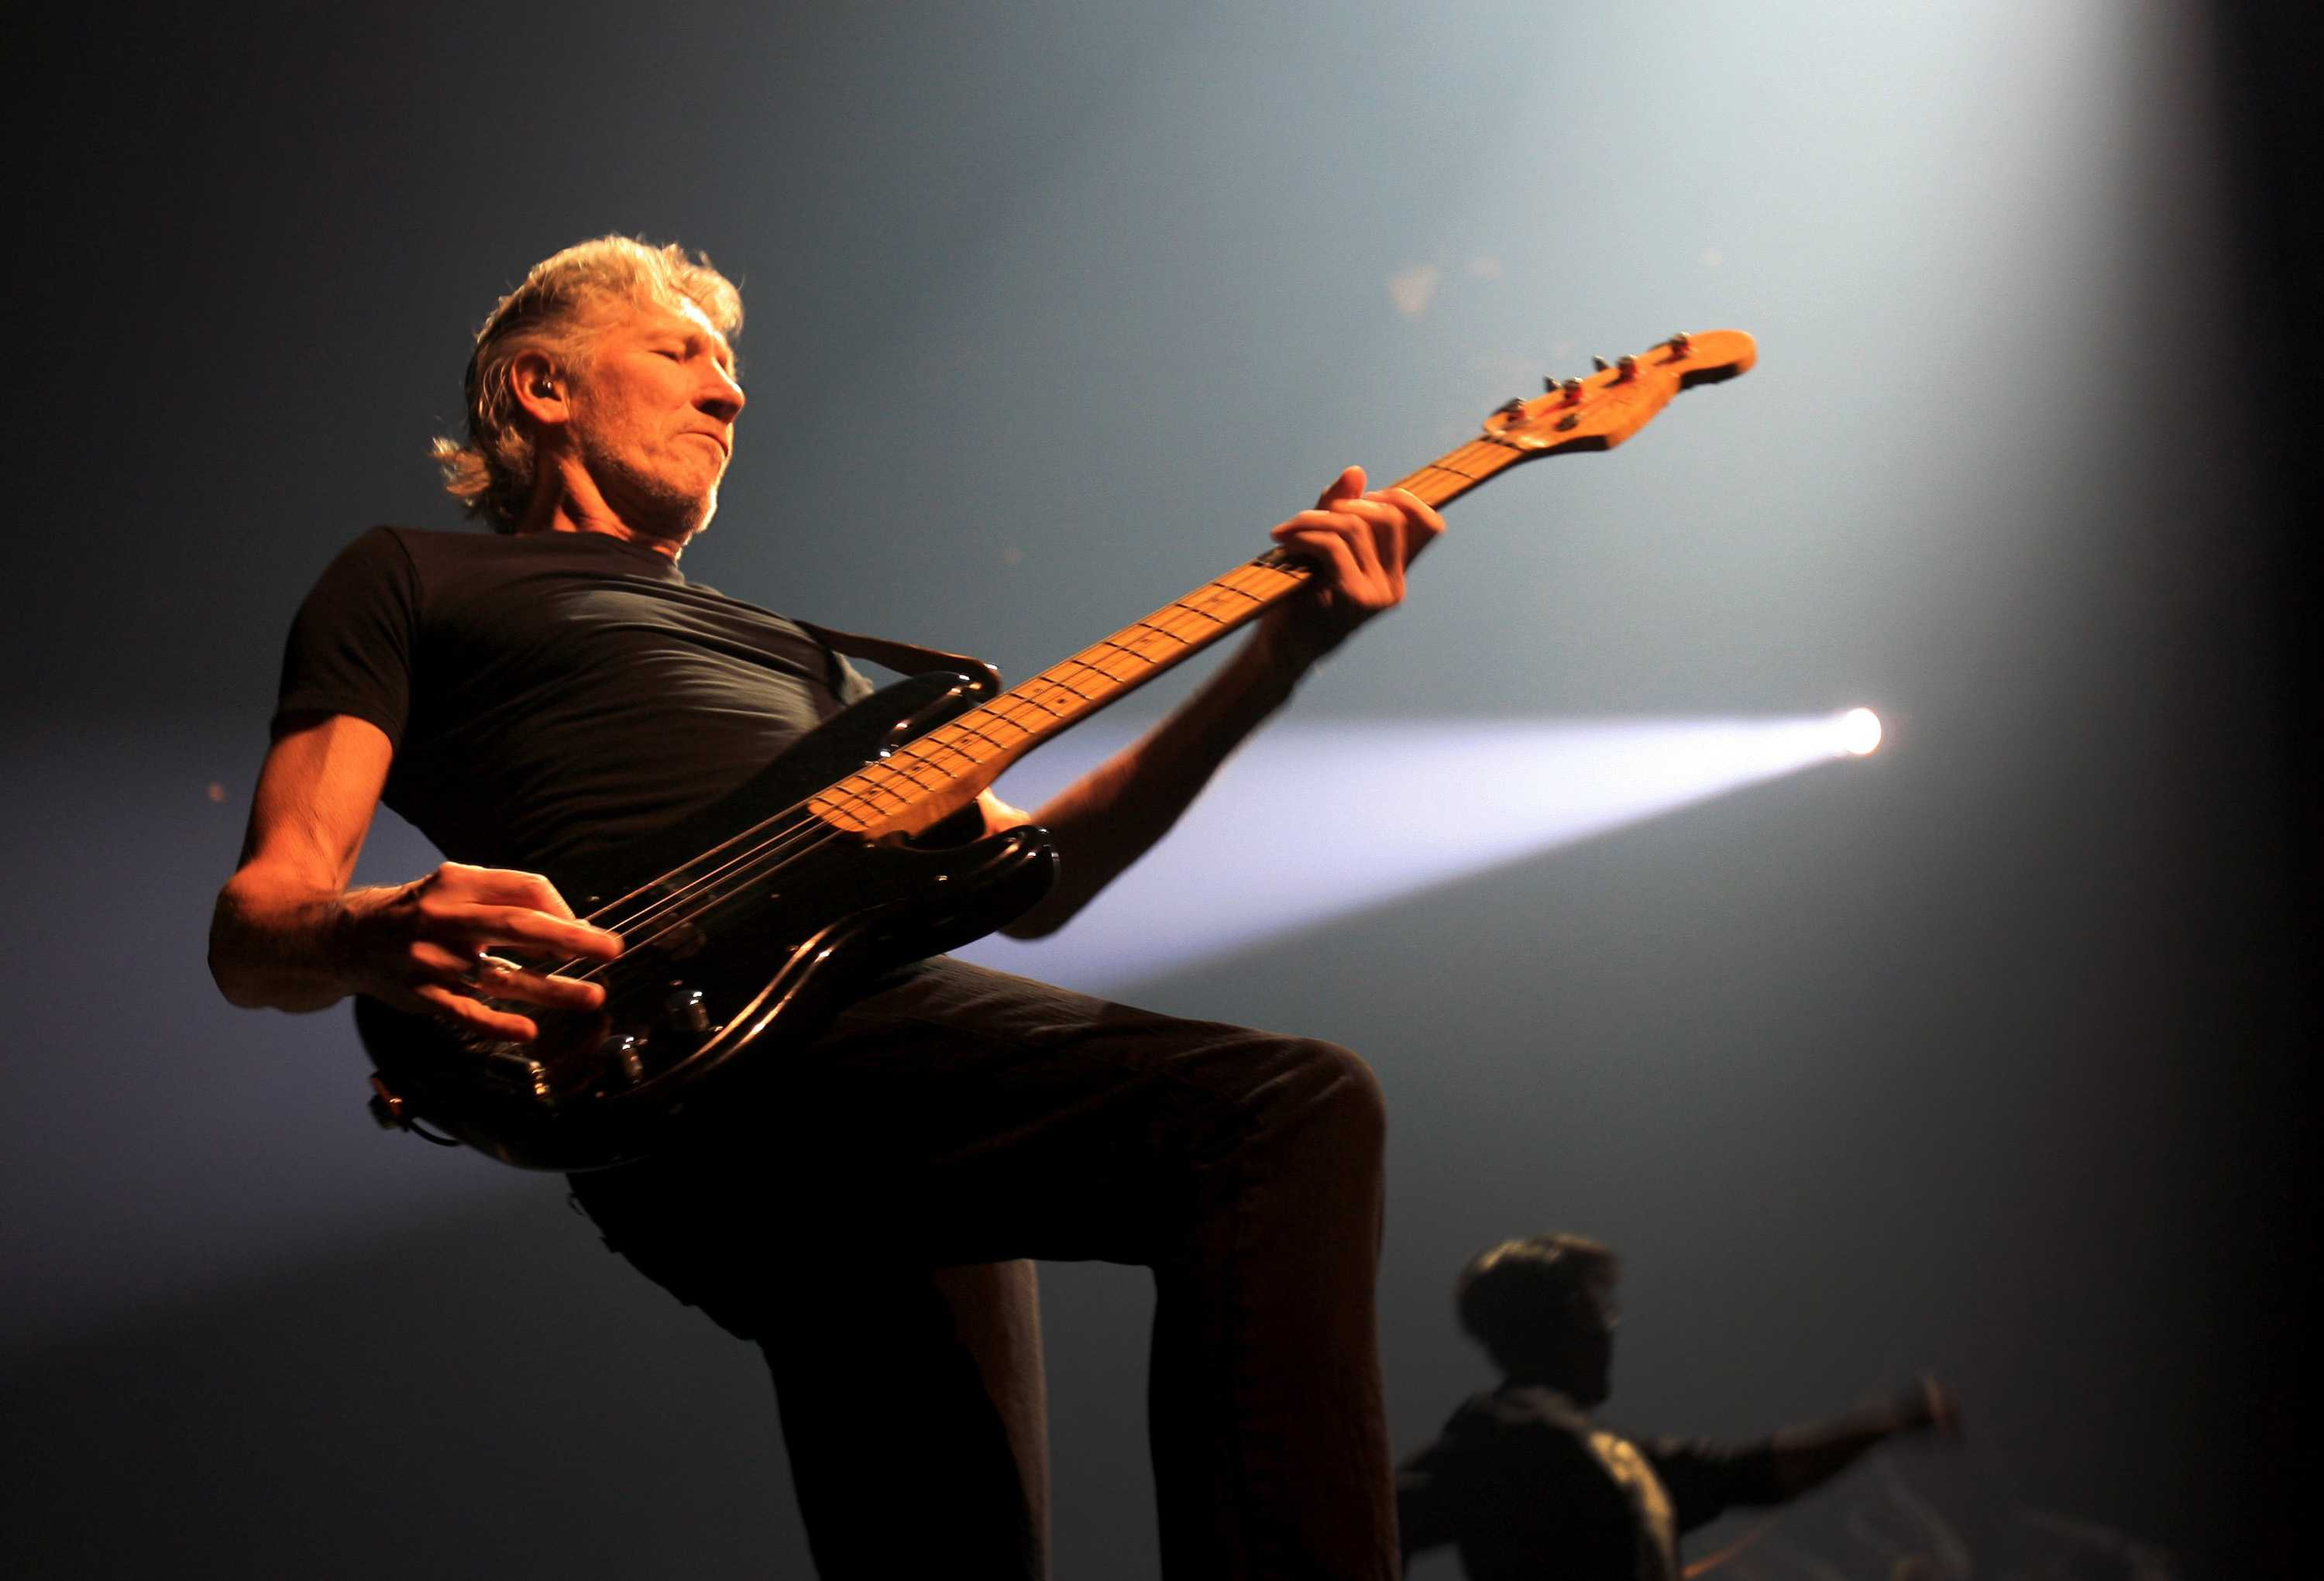 Roger+Waters+performed+Pink+Floyd%27s+classic+%22The+Wall%22+at+the+Palace+of+Auburn+Hills+on+Sunday%2C+October+24%2C+2010%2C+in+Auburn+Hills%2C+Michigan.+%28Kathleen+Galligan%2FDetroit+Free+Press%2FMCT%29